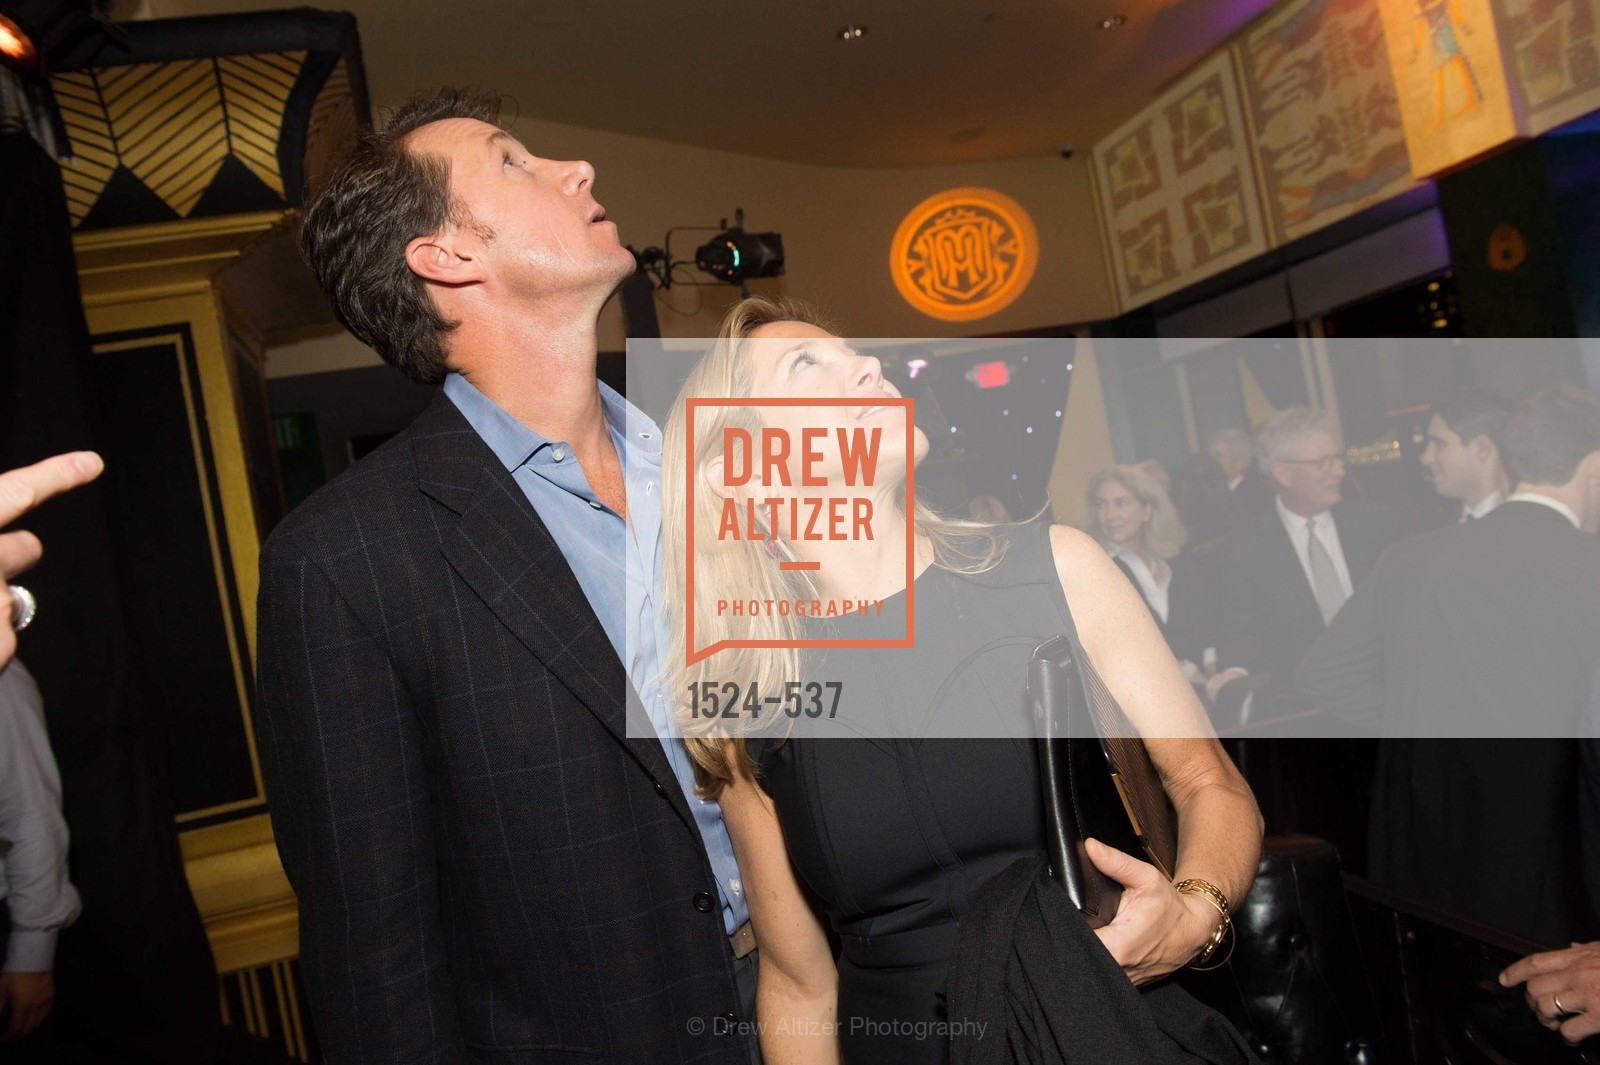 Bo Lasater, Kathryn Lasater, TOP OF THE MARK'S 75TH Anniversary Party, US, November 6th, 2014,Drew Altizer, Drew Altizer Photography, full-service agency, private events, San Francisco photographer, photographer california